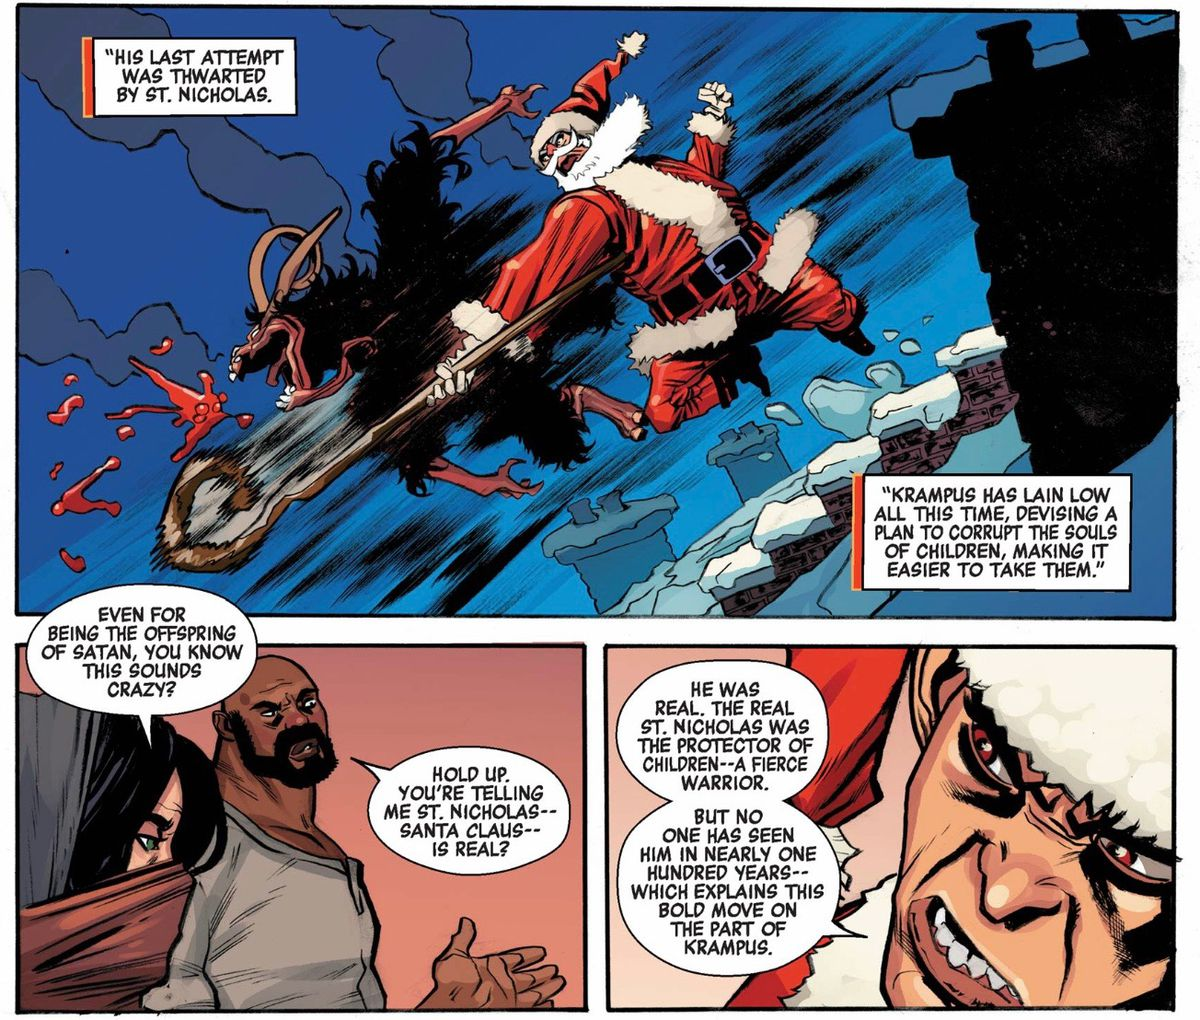 """""""You're telling me St. Nicholas — Santa Claus — is real?"""" asks Luke Cage, after finding out that St. Nicholas thwarted the Krampus a hundred years ago in Power Man and Iron Fist: Sweet Christmas #1, Marvel Comics (2016)."""